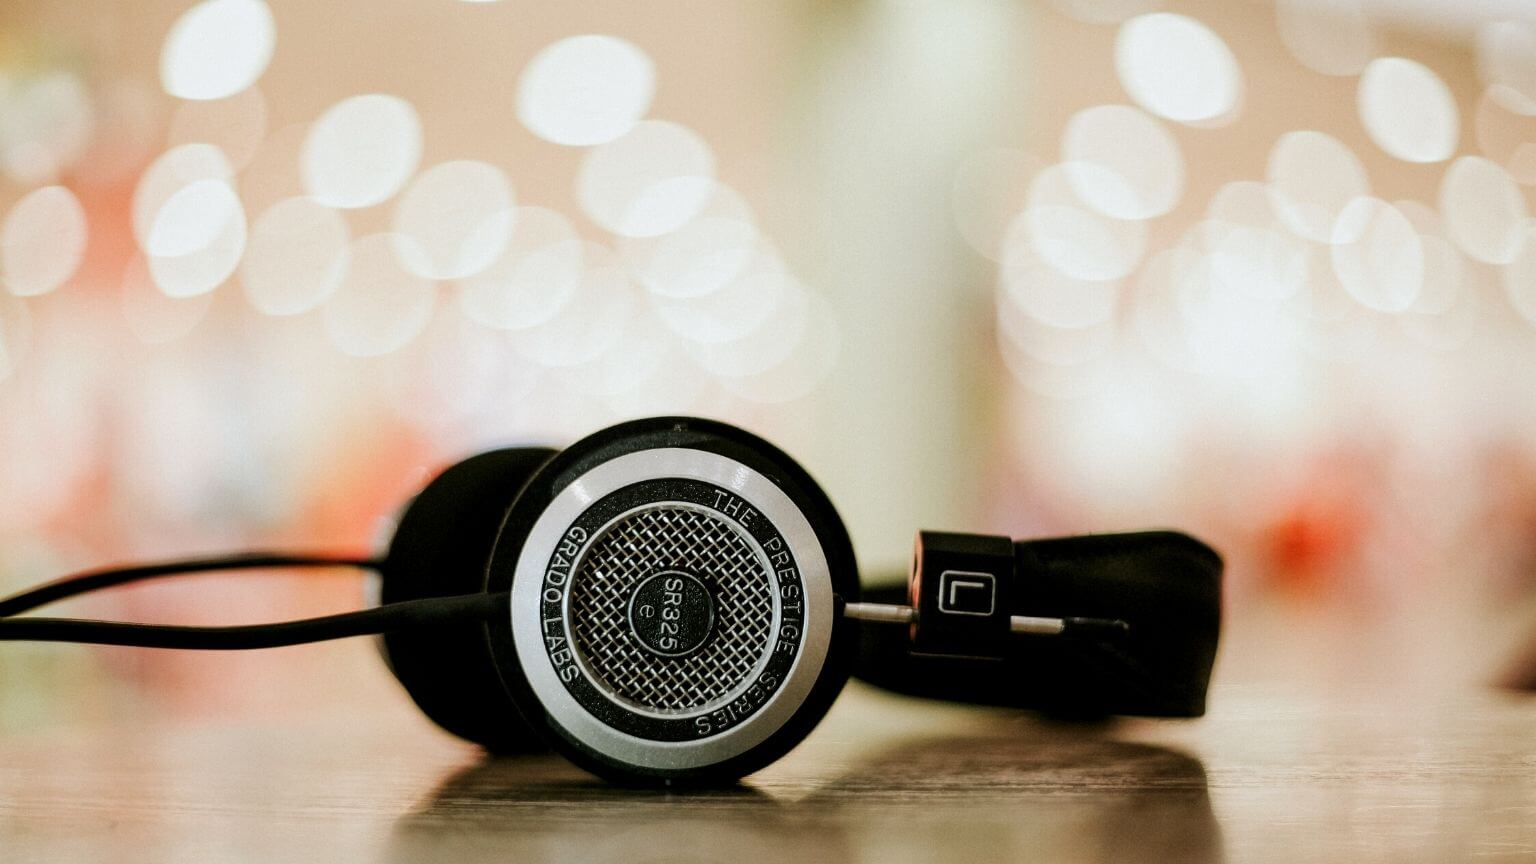 Les 9 podcasts qui m'inspirent au quotidien